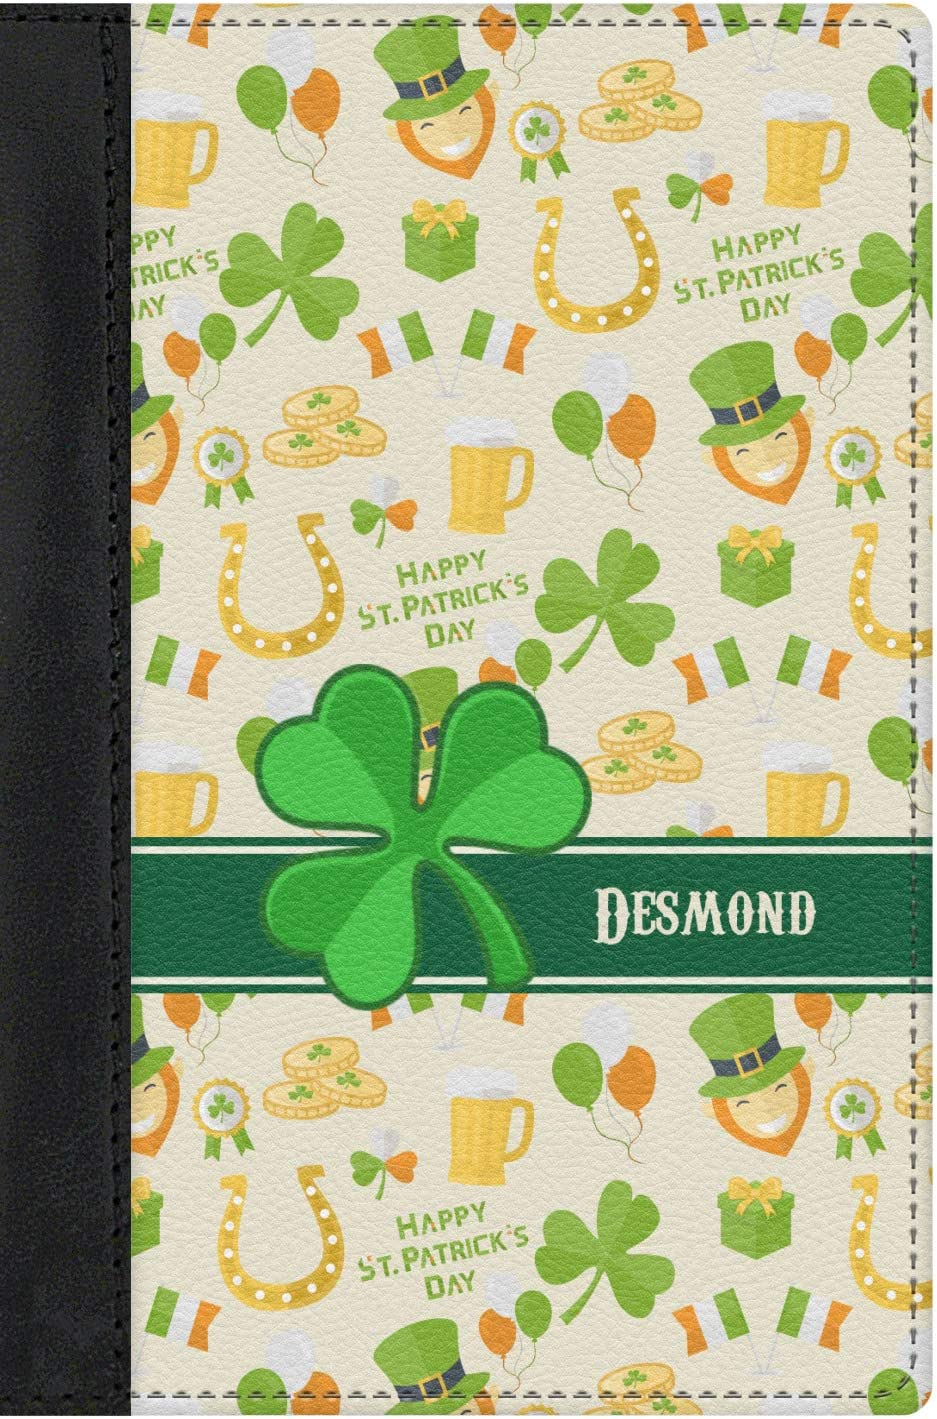 St Patricks Day Genuine Leather Passport Cover Personalized